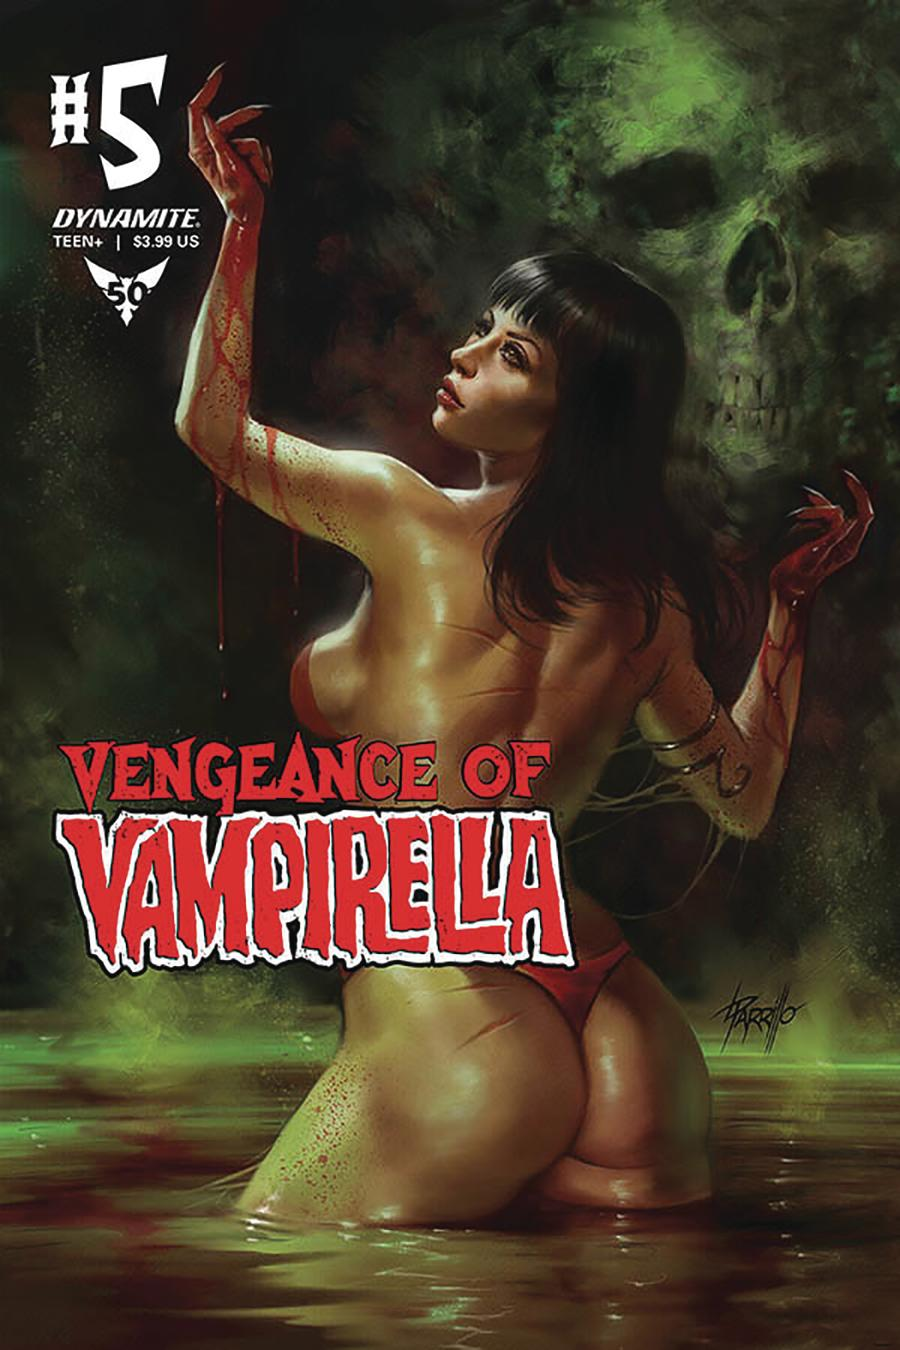 Vengeance Of Vampirella Vol 2 #5 Cover A Regular Lucio Parrillo Cover